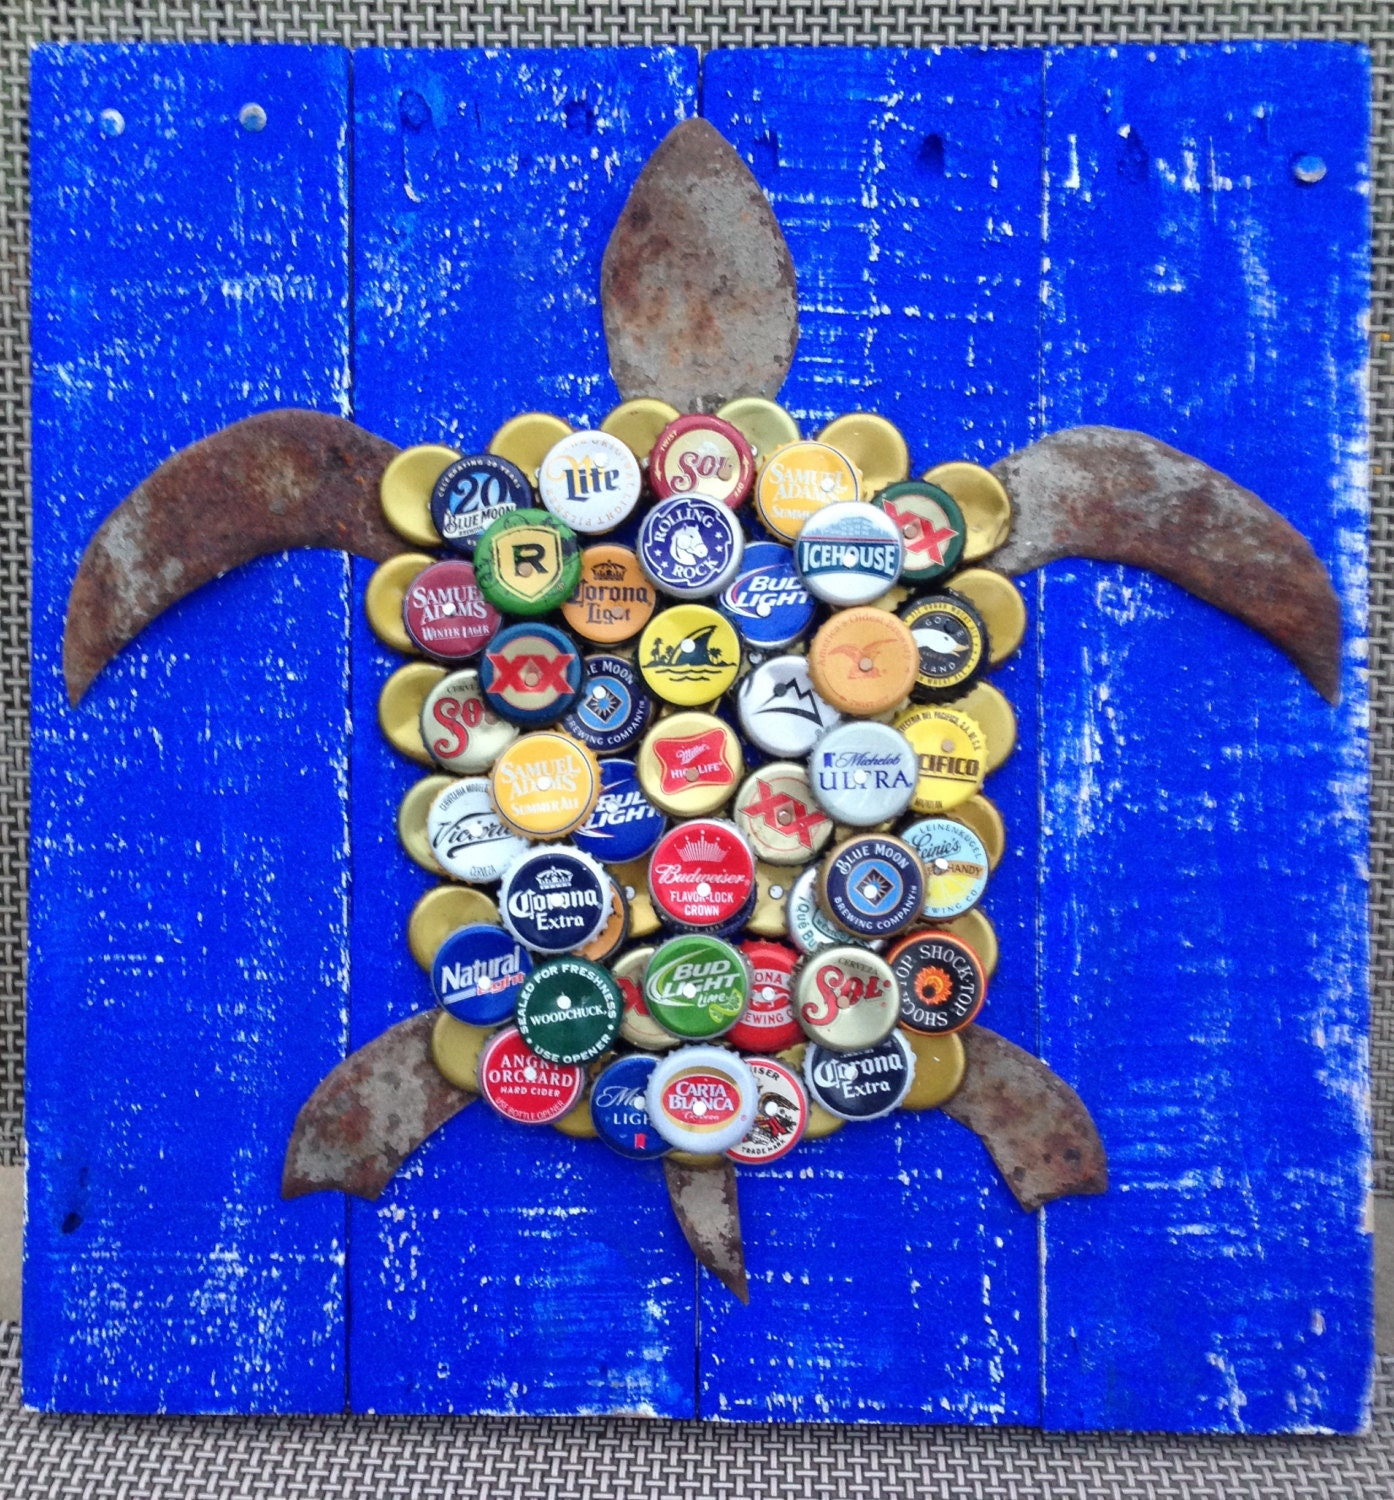 Bottle Cap Wall Art anchor wall art with bud light bottle caps